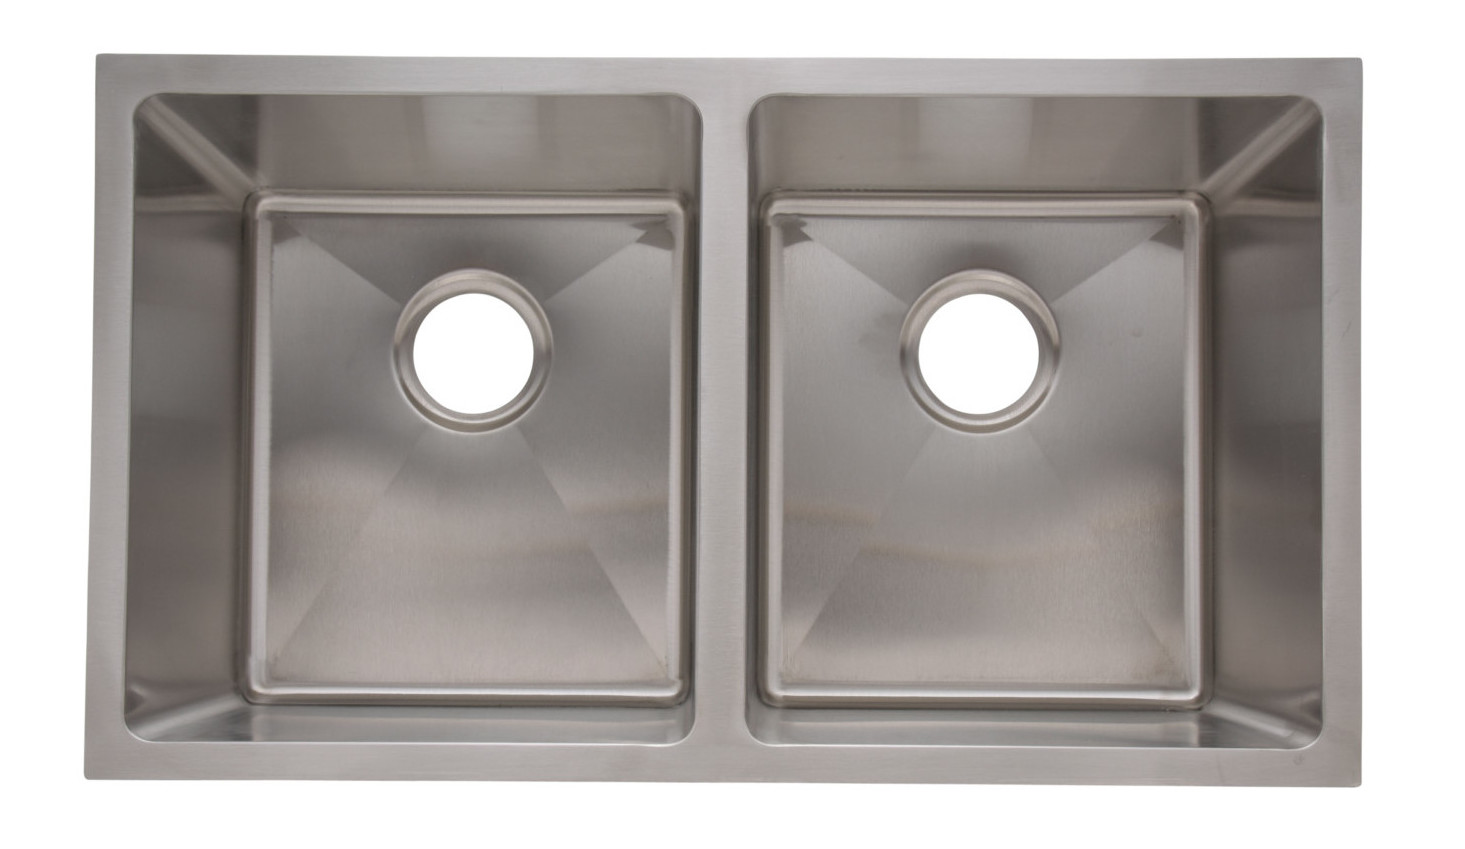 Quality Sinks and Fixtures | Stainless Steel Sinks | Porcelain Sinks on american standard kitchen sinks, low divide kitchen sinks, stainless steel deep sink, copper kitchen sinks, stainless steel sinks product, stainless steel drop in kitchen sinks, stainless steel sink protector, elegant kitchen sinks, stainless steel trough sinks, discontinued kitchen sinks, stainless steel sink grids, kraus kitchen sinks, franke kitchen sinks, undermount bathroom sinks, stainless steel sink with drainboard, farmhouse kitchen sinks, stainless steel work sinks, stainless steel single undermount sink, stainless steel undermount double sink, integrated kitchen sinks,